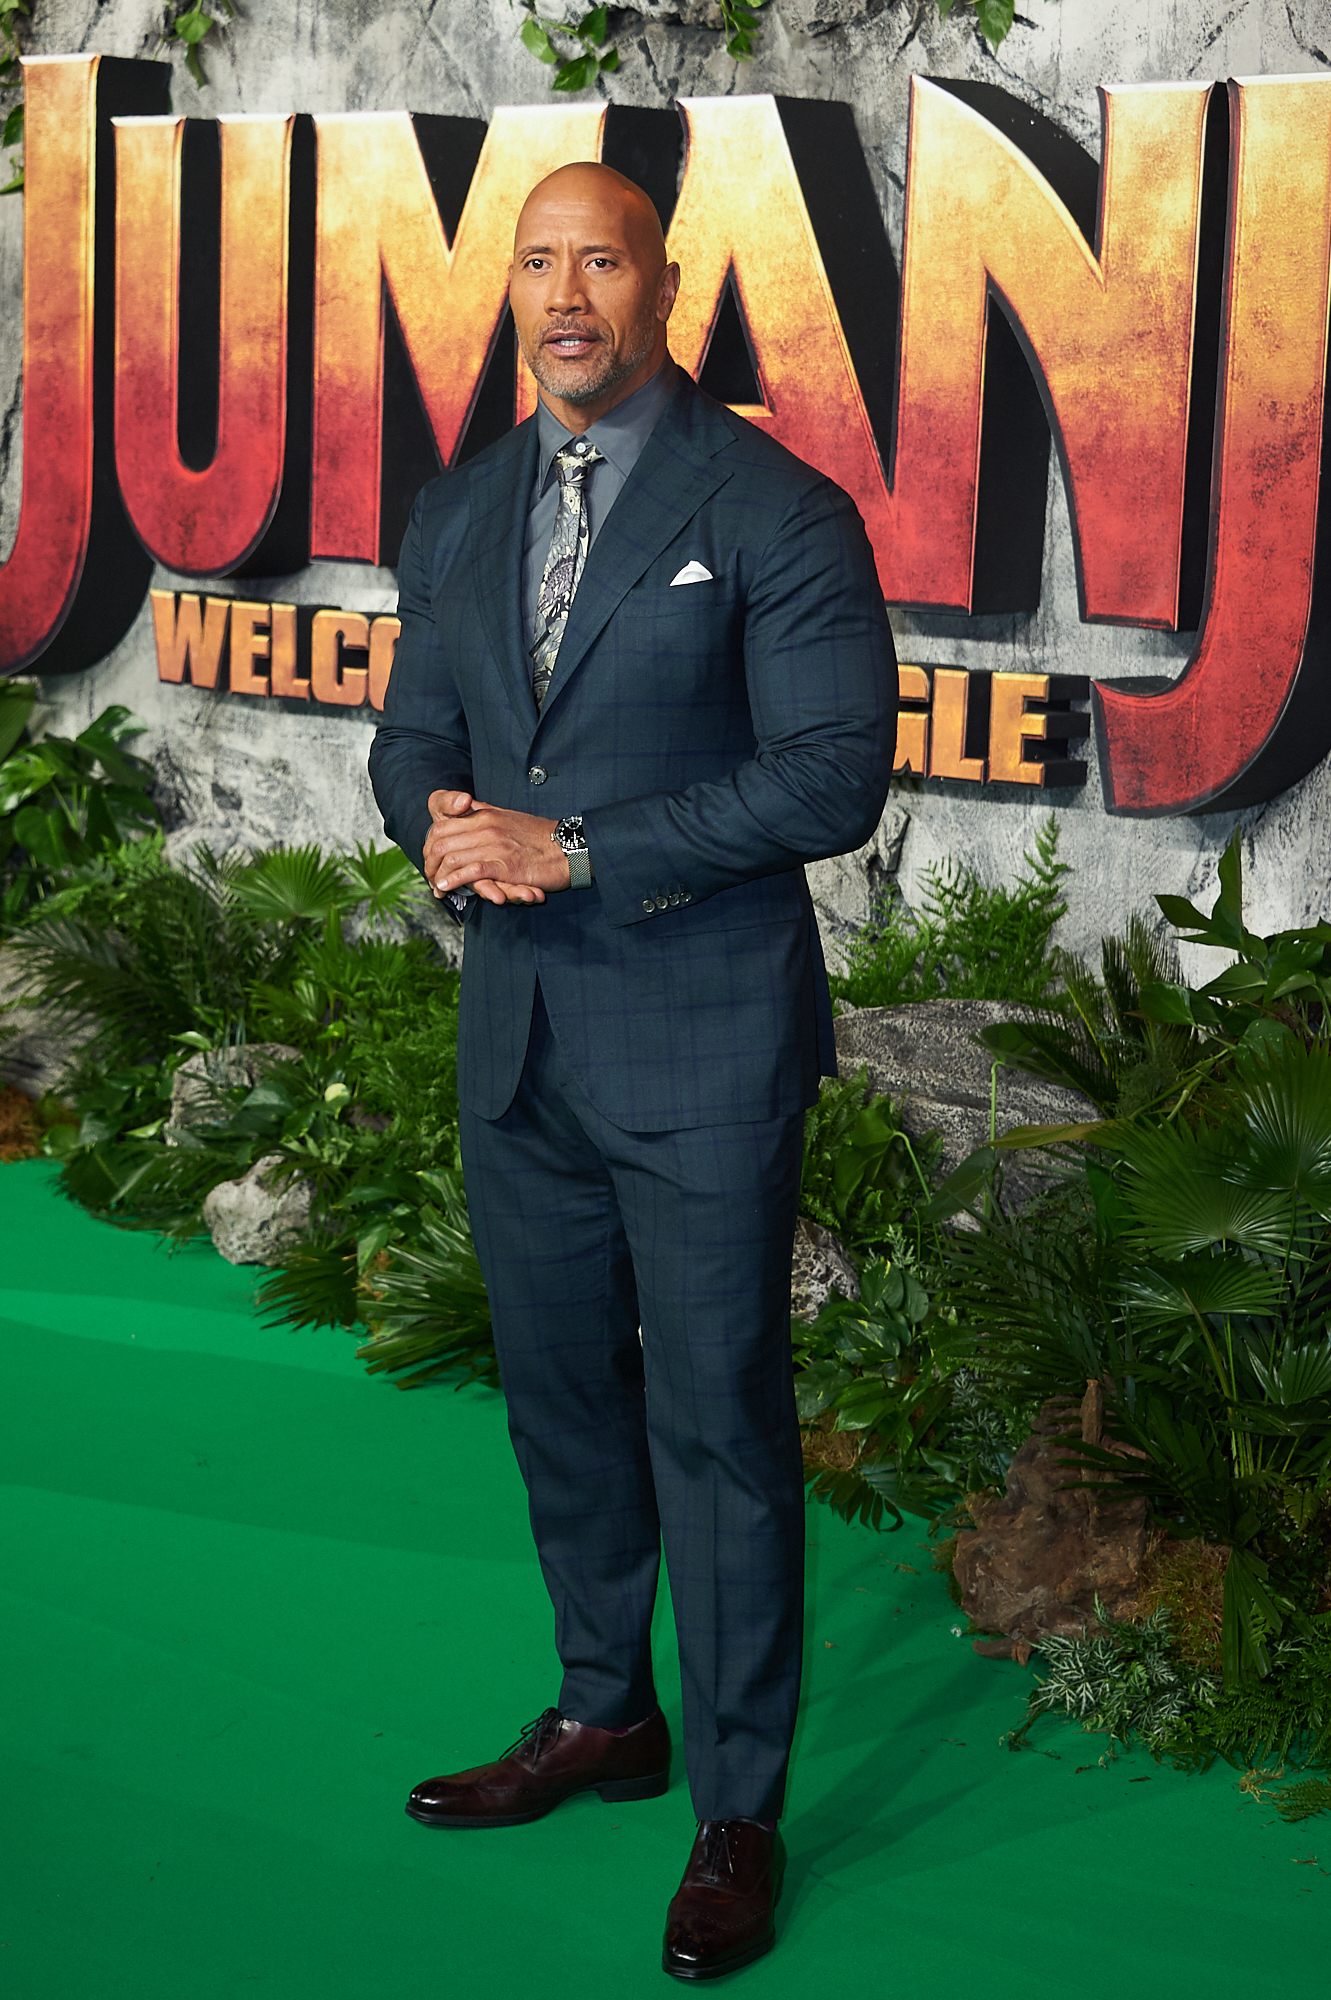 'Jumanji: Welcome to the Jungle' U.K. Premiere - Arrivals  Featuring: Dwayne Johnson Where: London, United Kingdom When: 07 Dec 2017 Credit: WENN